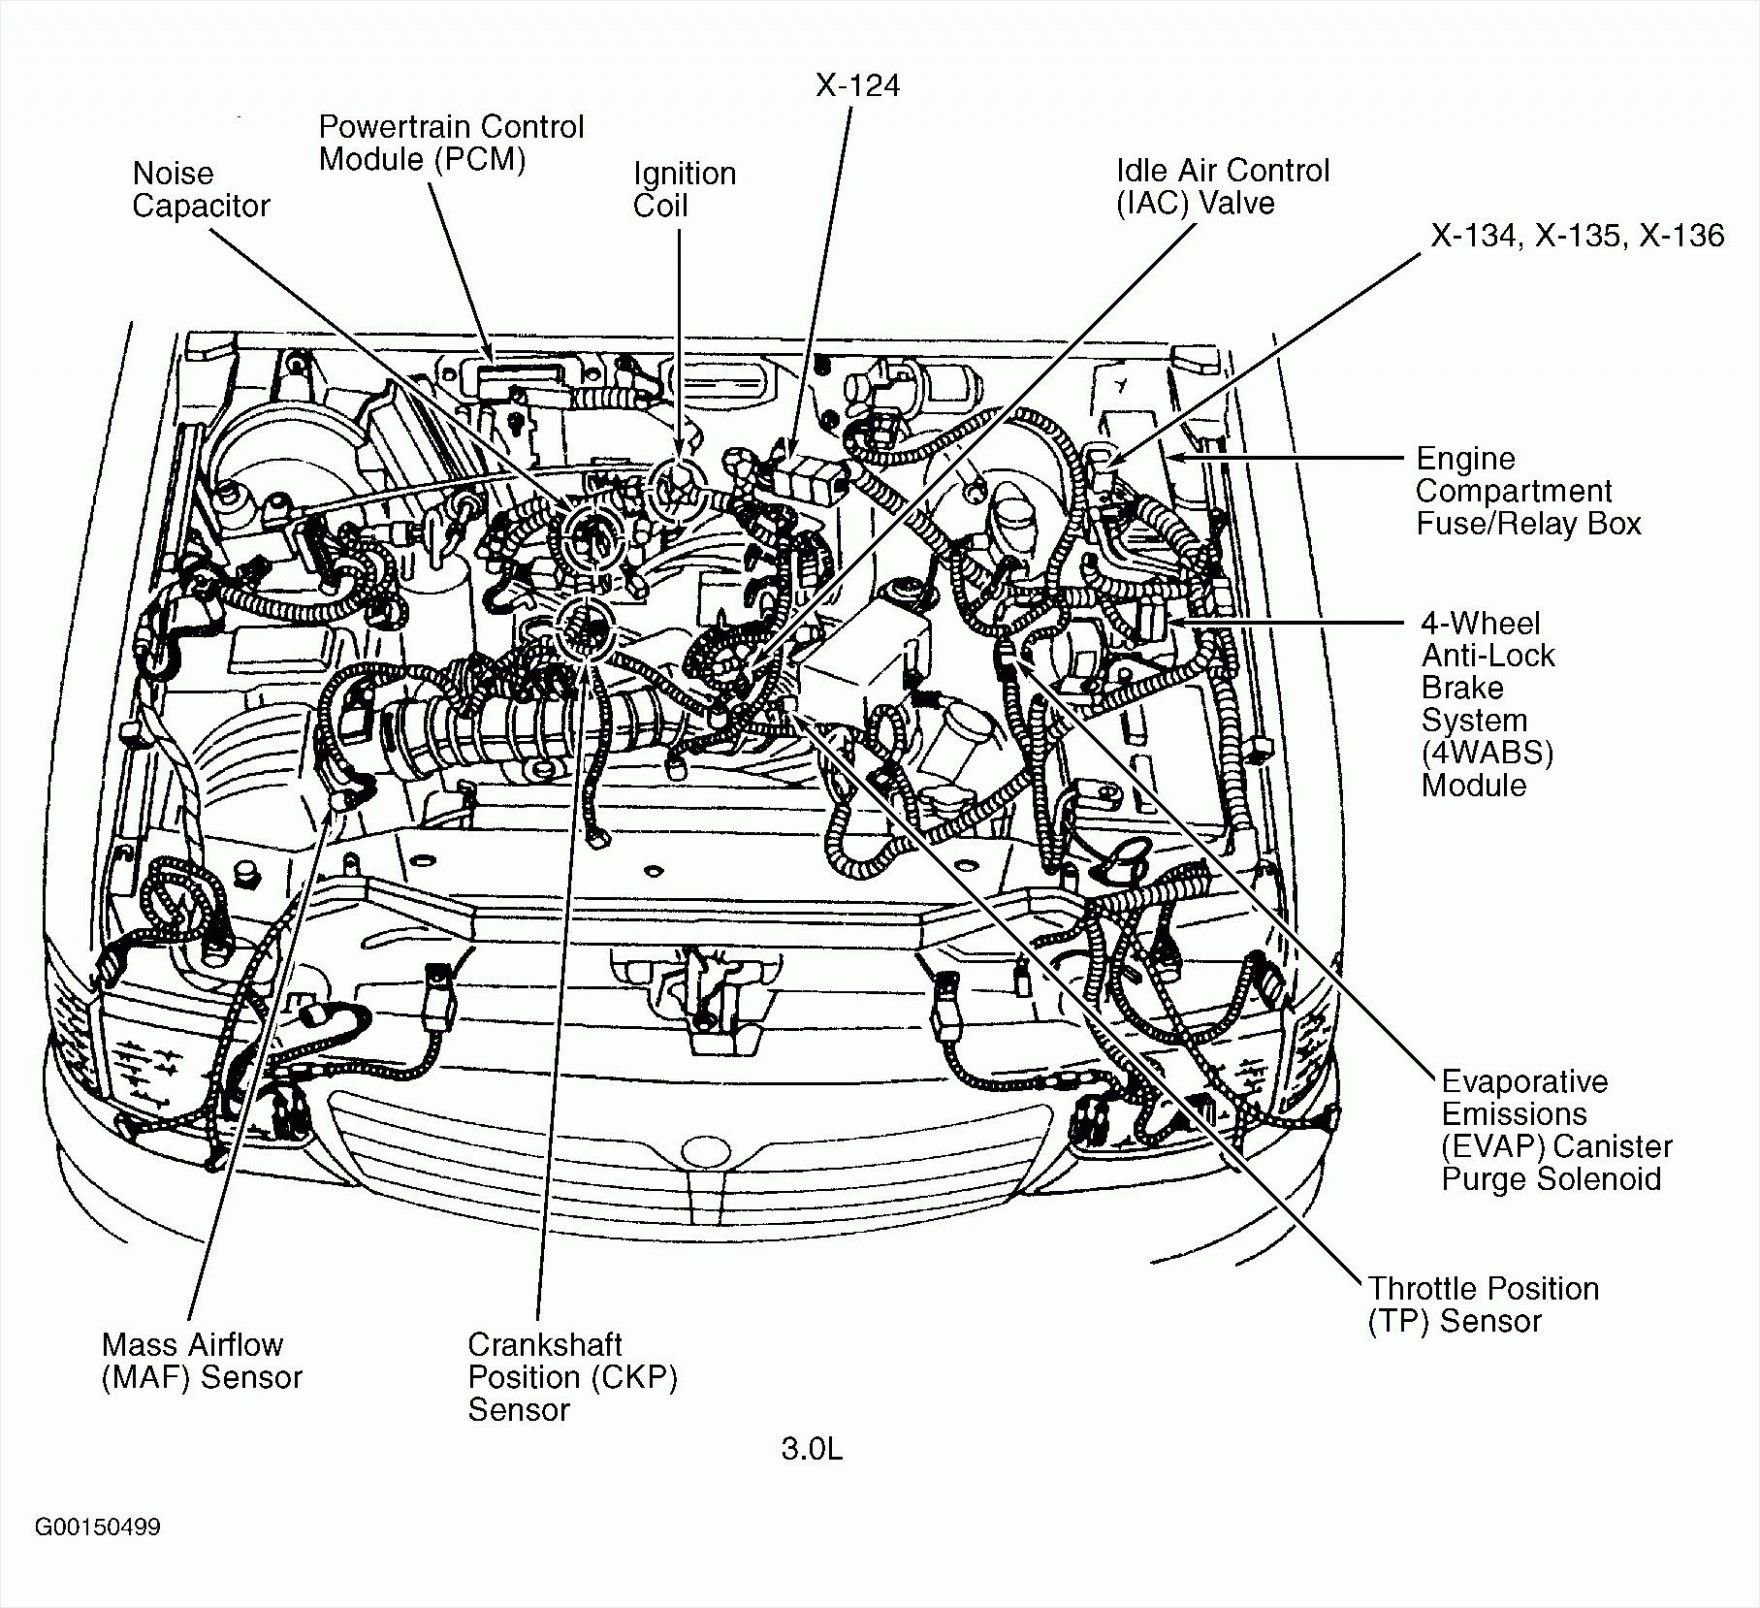 Tdi Engine Bay Diagram Tdi Engine Bay Diagram